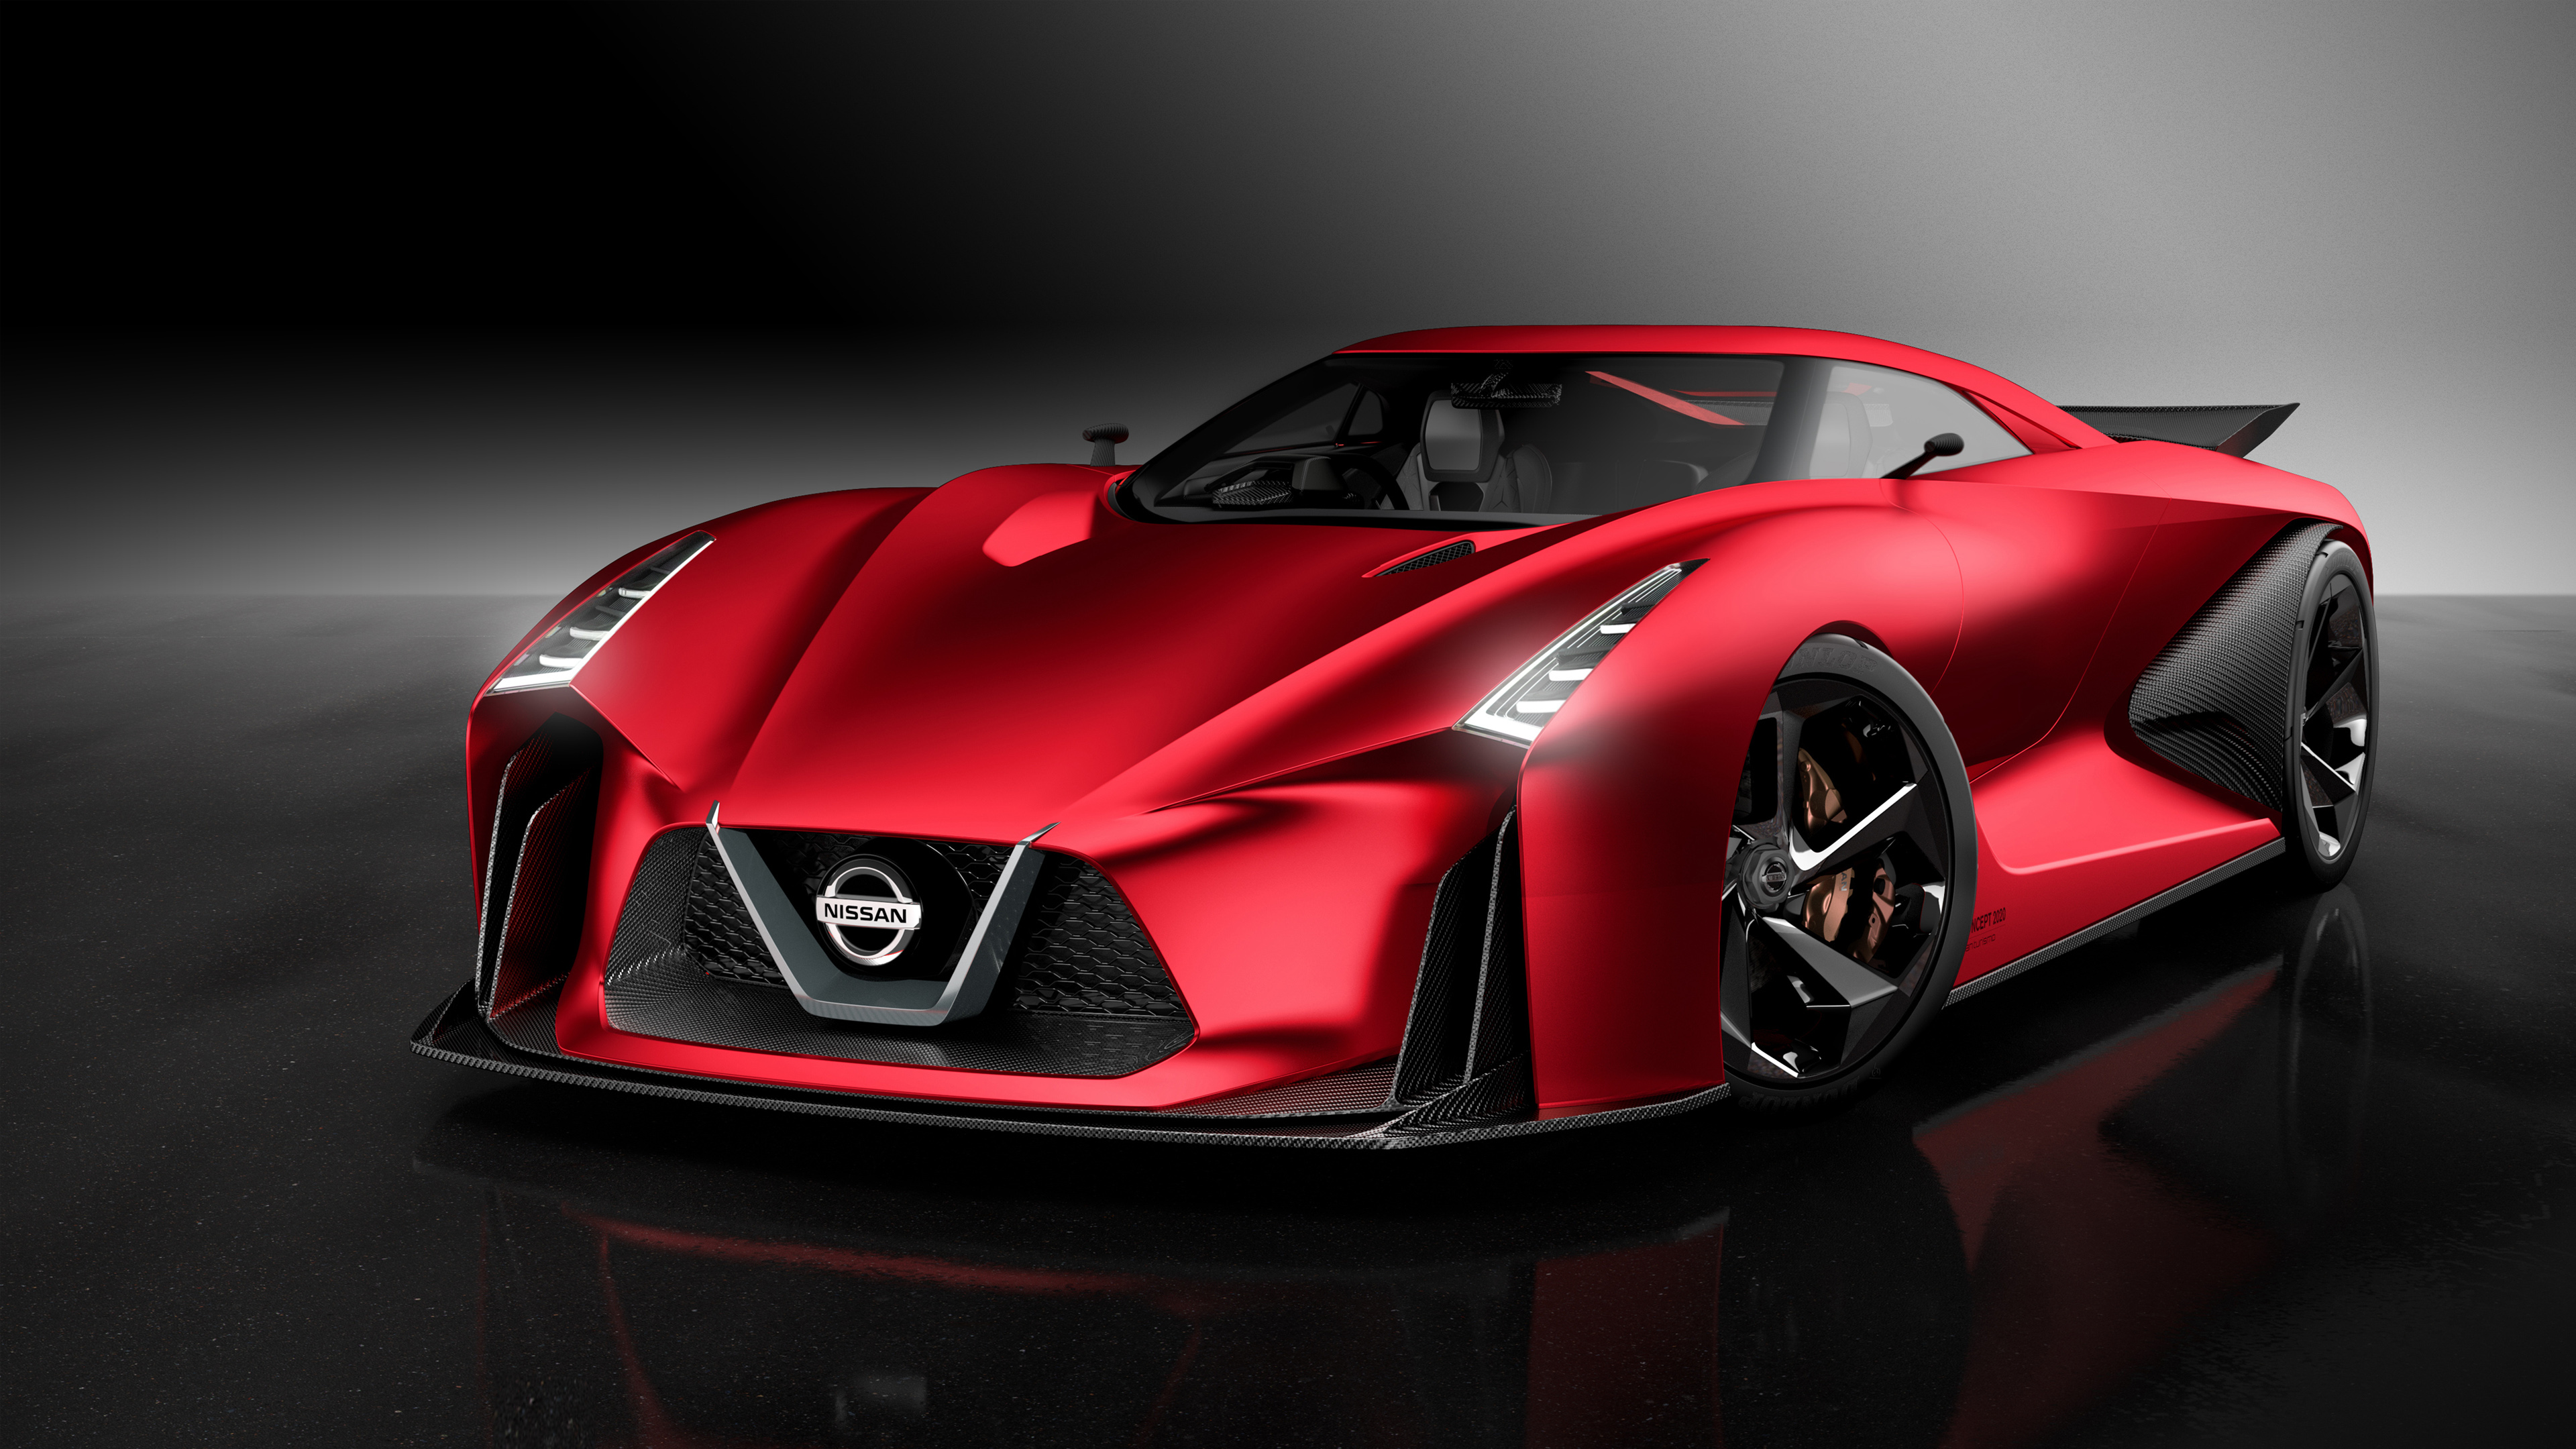 Nissan Concept 2020 Vision Gran Turismo Wallpaper HD Car Wallpapers